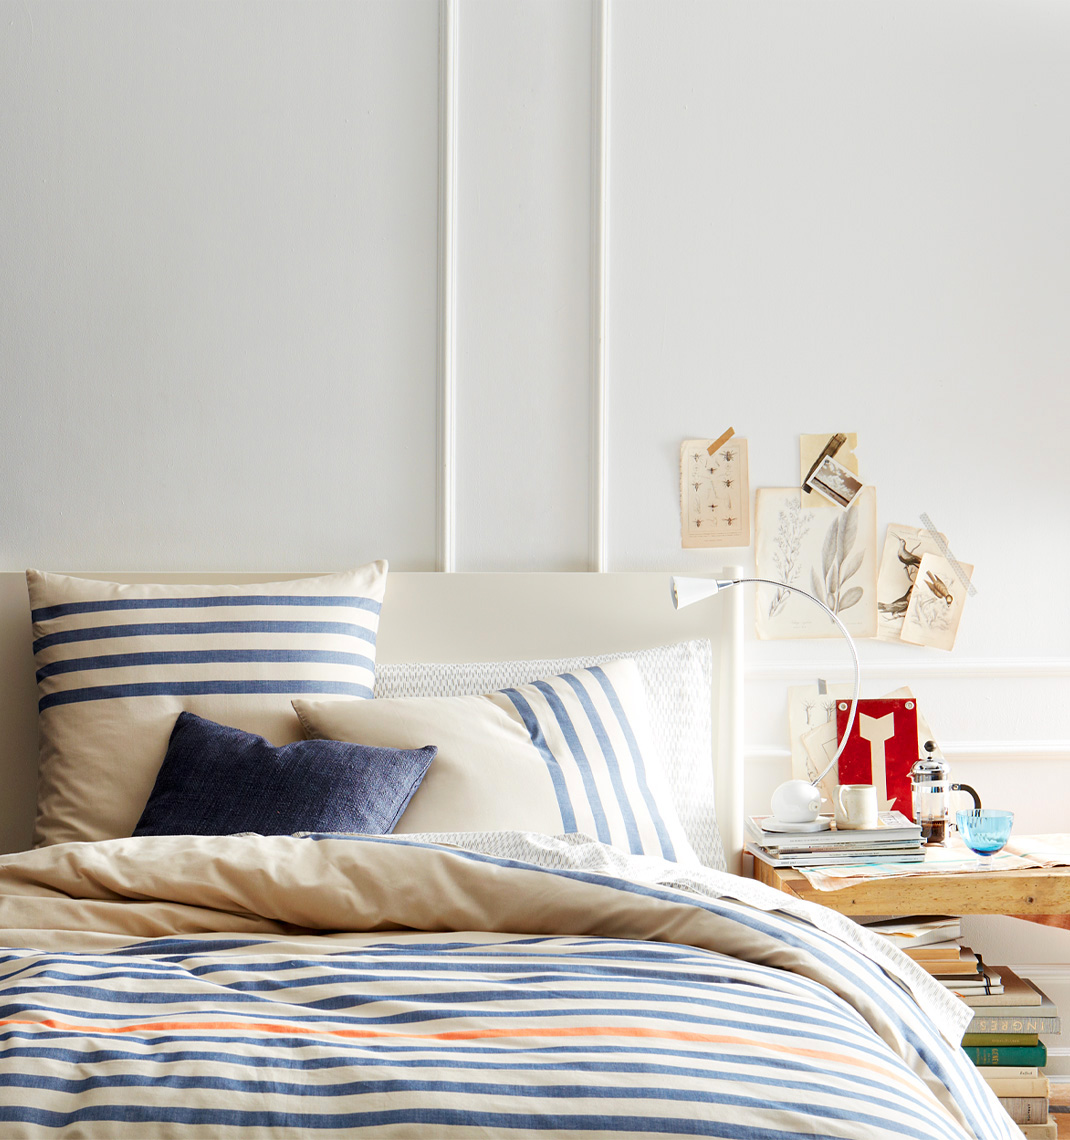 pip-sunrise-stripe-duvet-hero-sum13